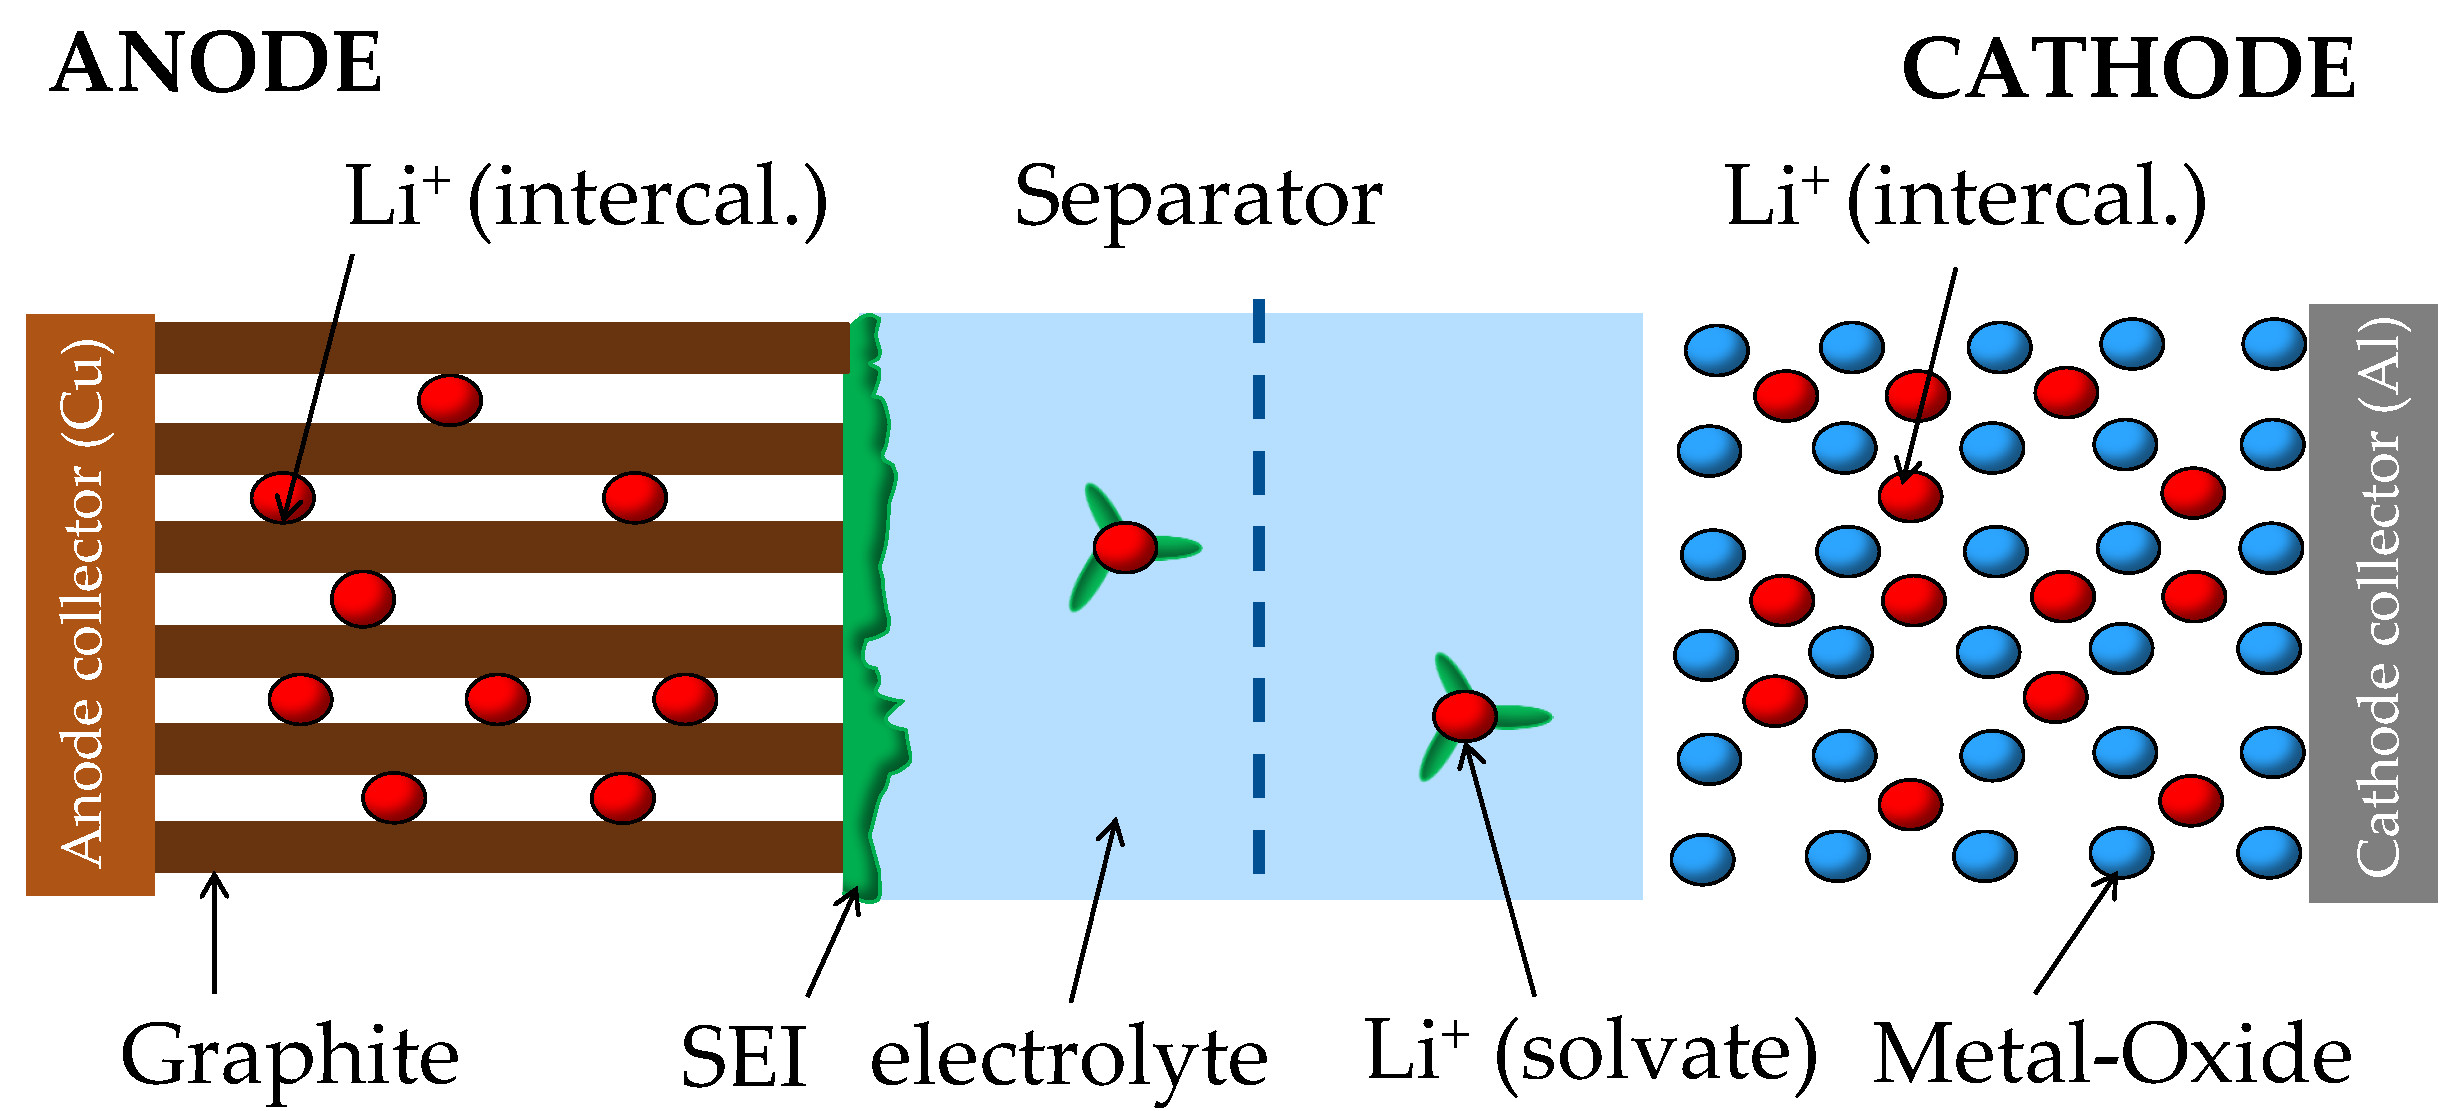 Energies | Free Full-Text | Lithium-Ion Battery Storage for